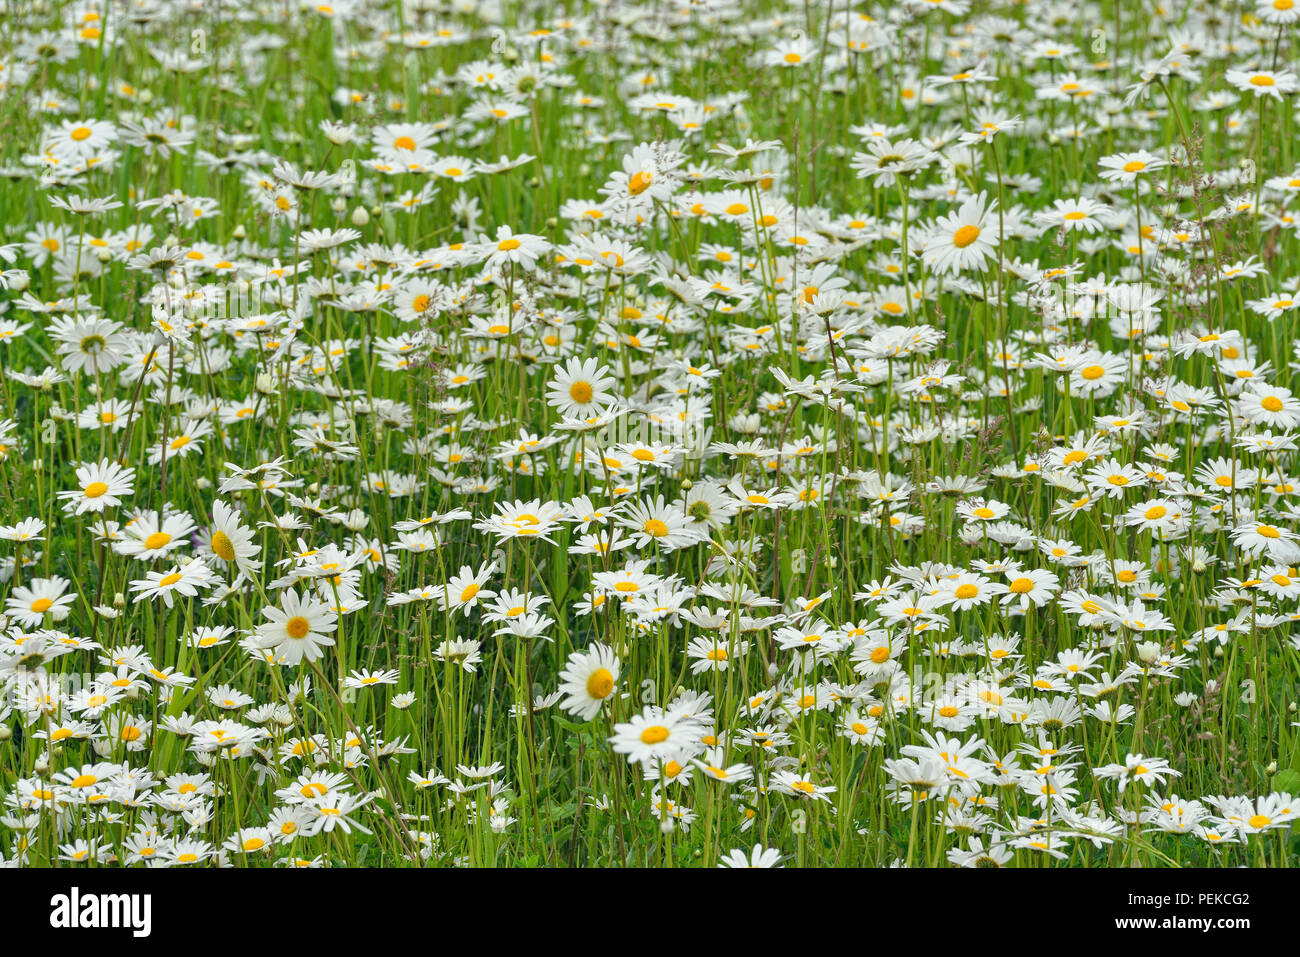 A patch of oxeye daisies, Hwy 63 near Ashland, Wisconsin, USA - Stock Image